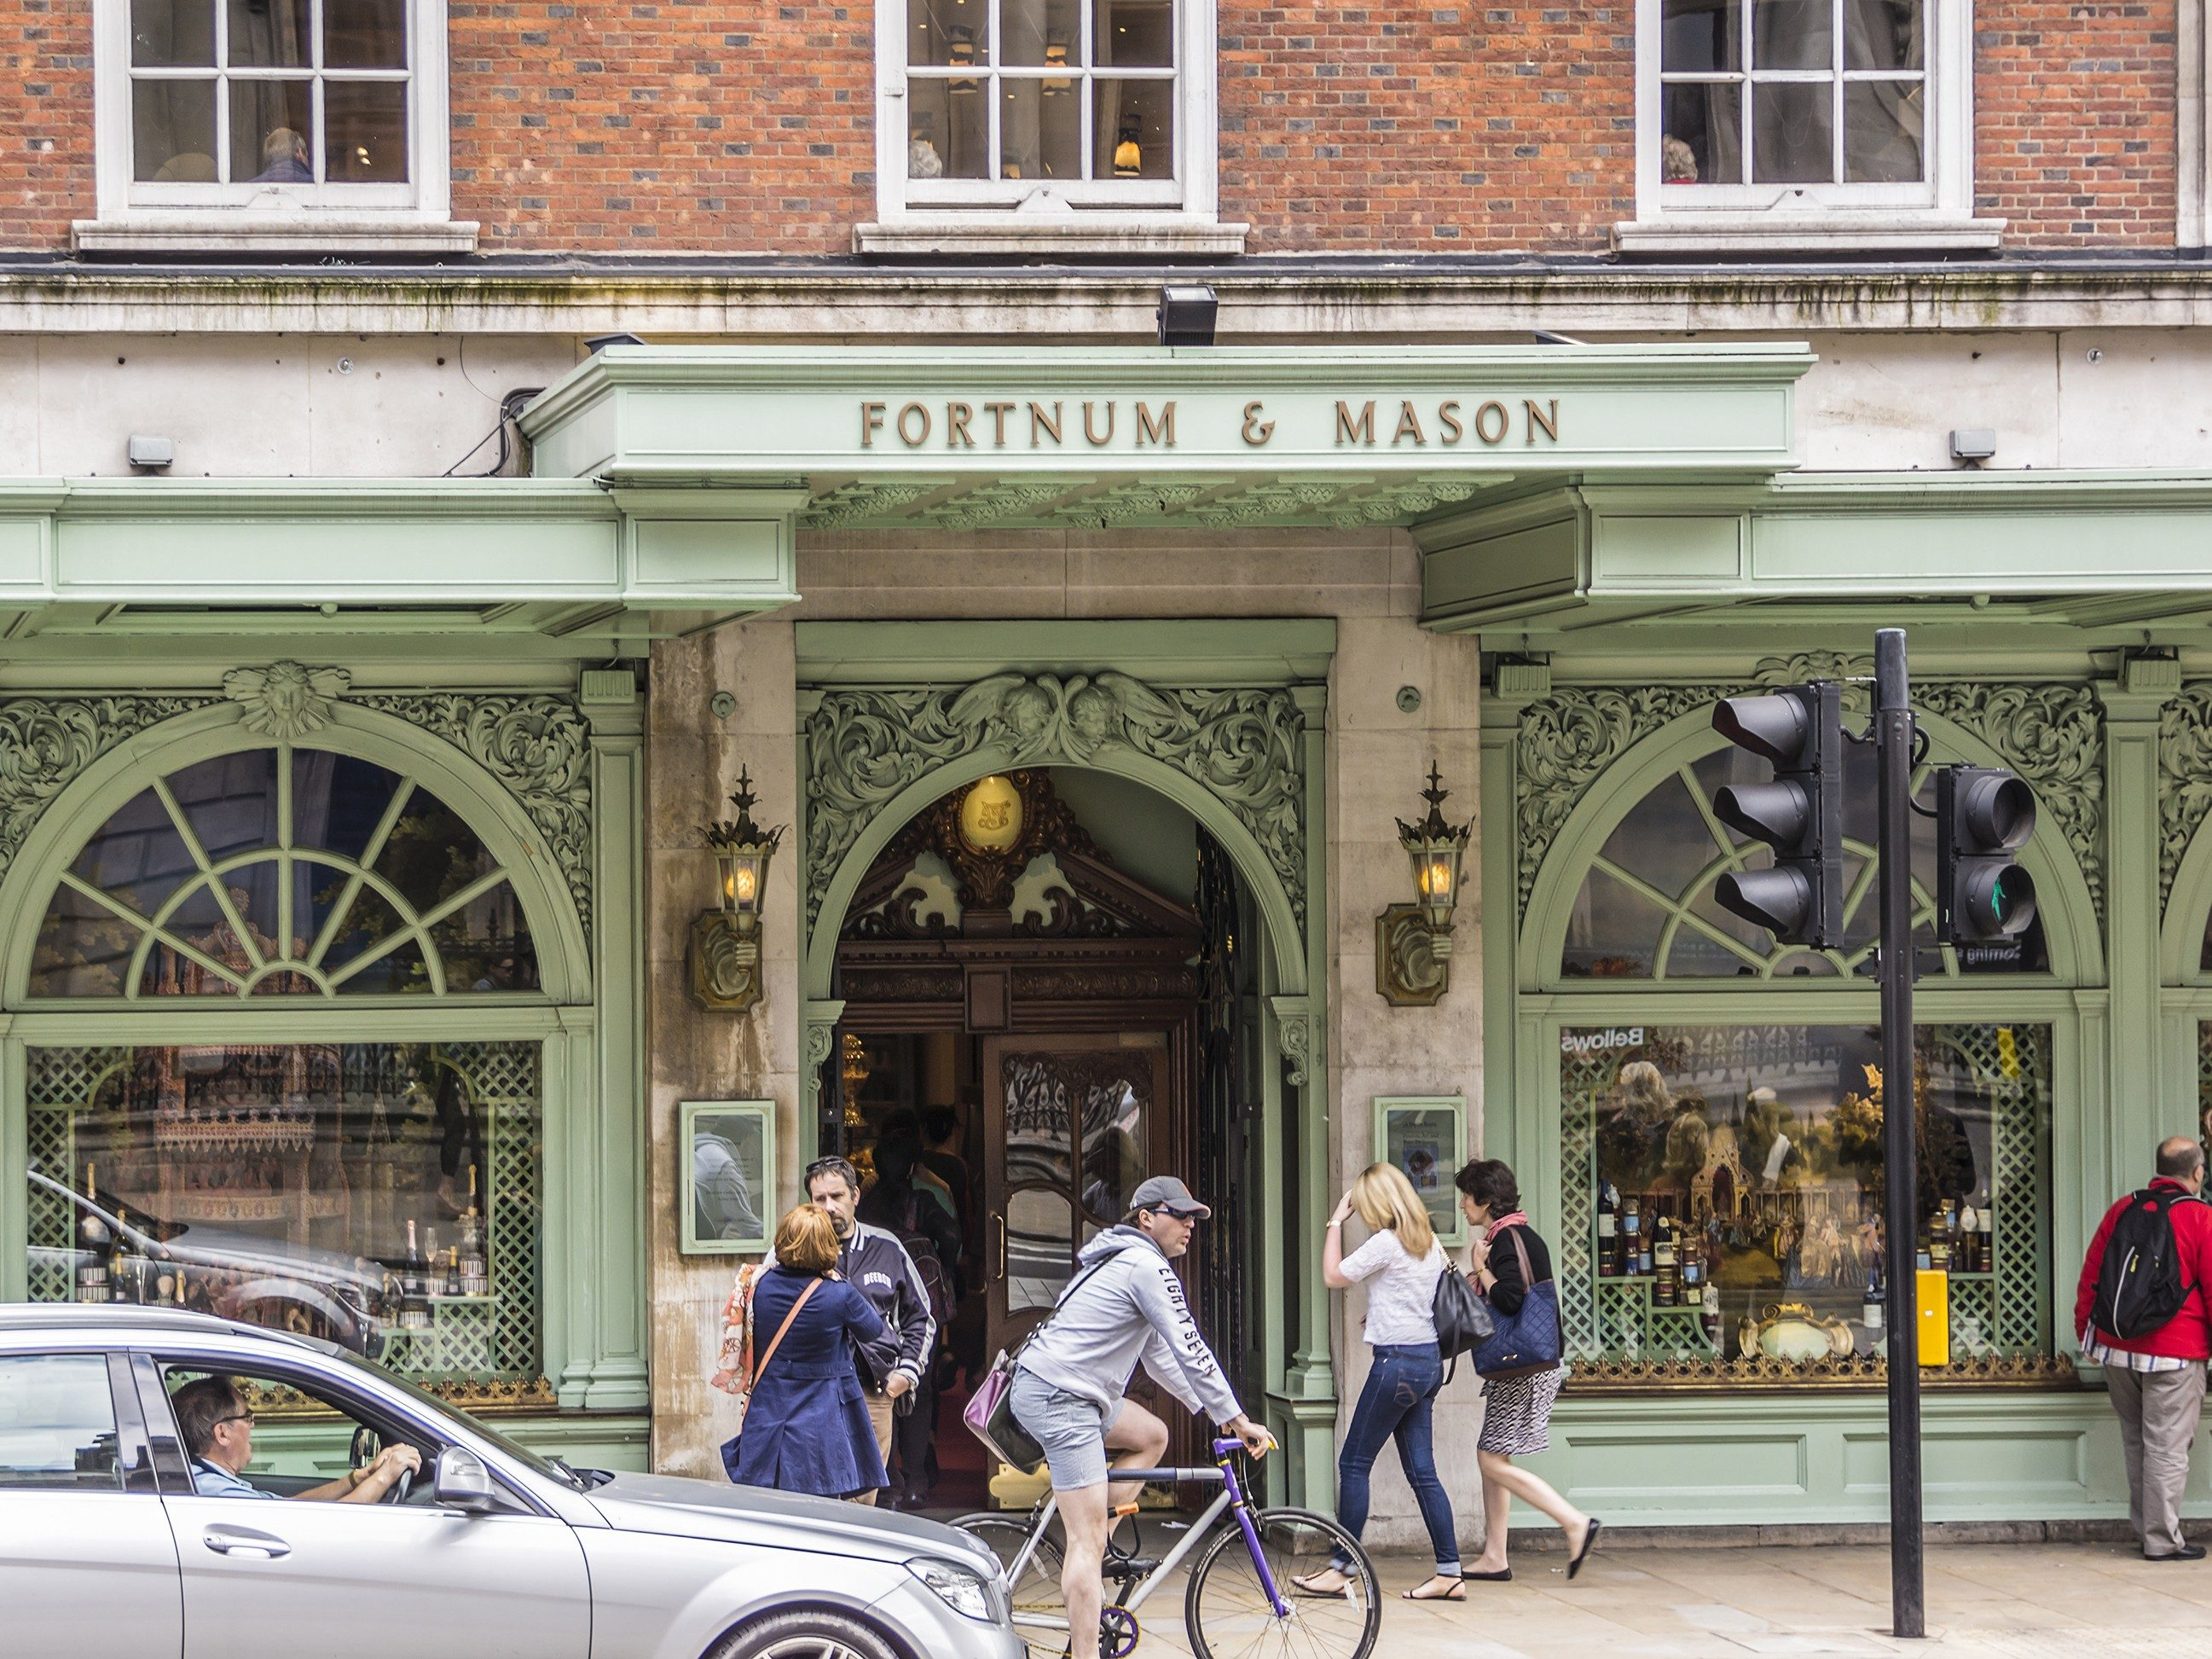 London attractions: Fortnum & Mason